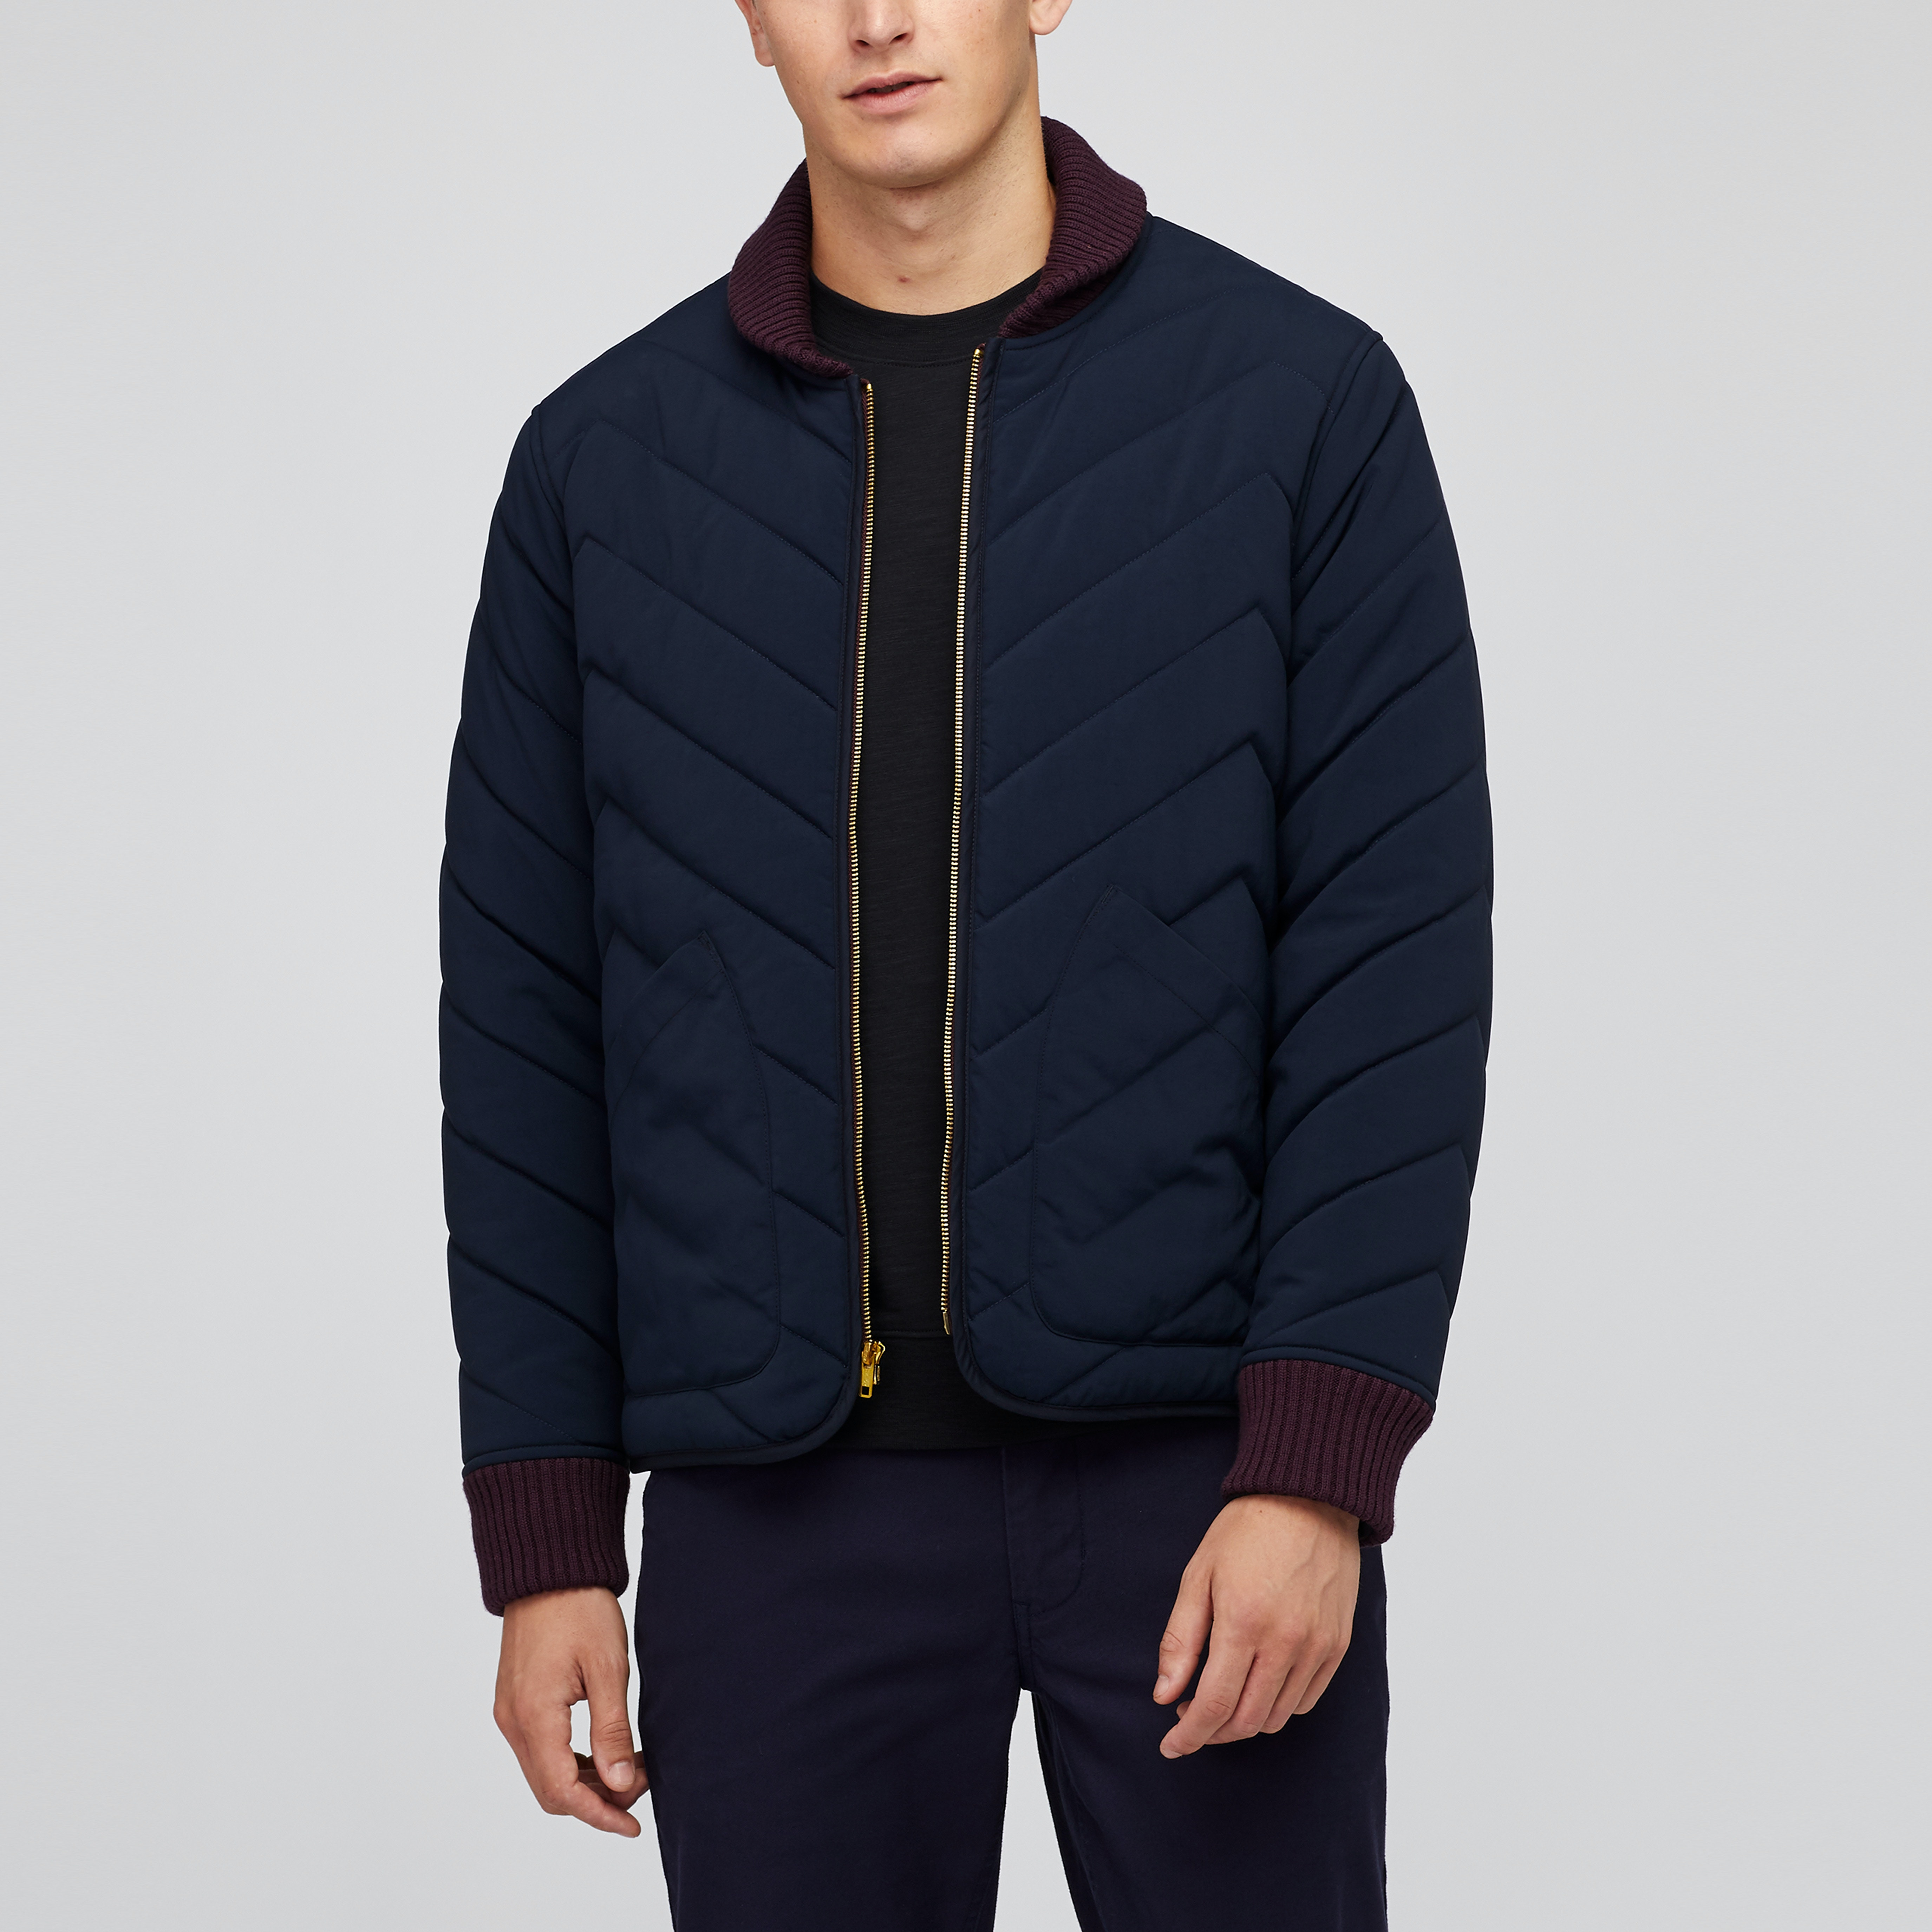 The Quilted Zig-Zag Bomber